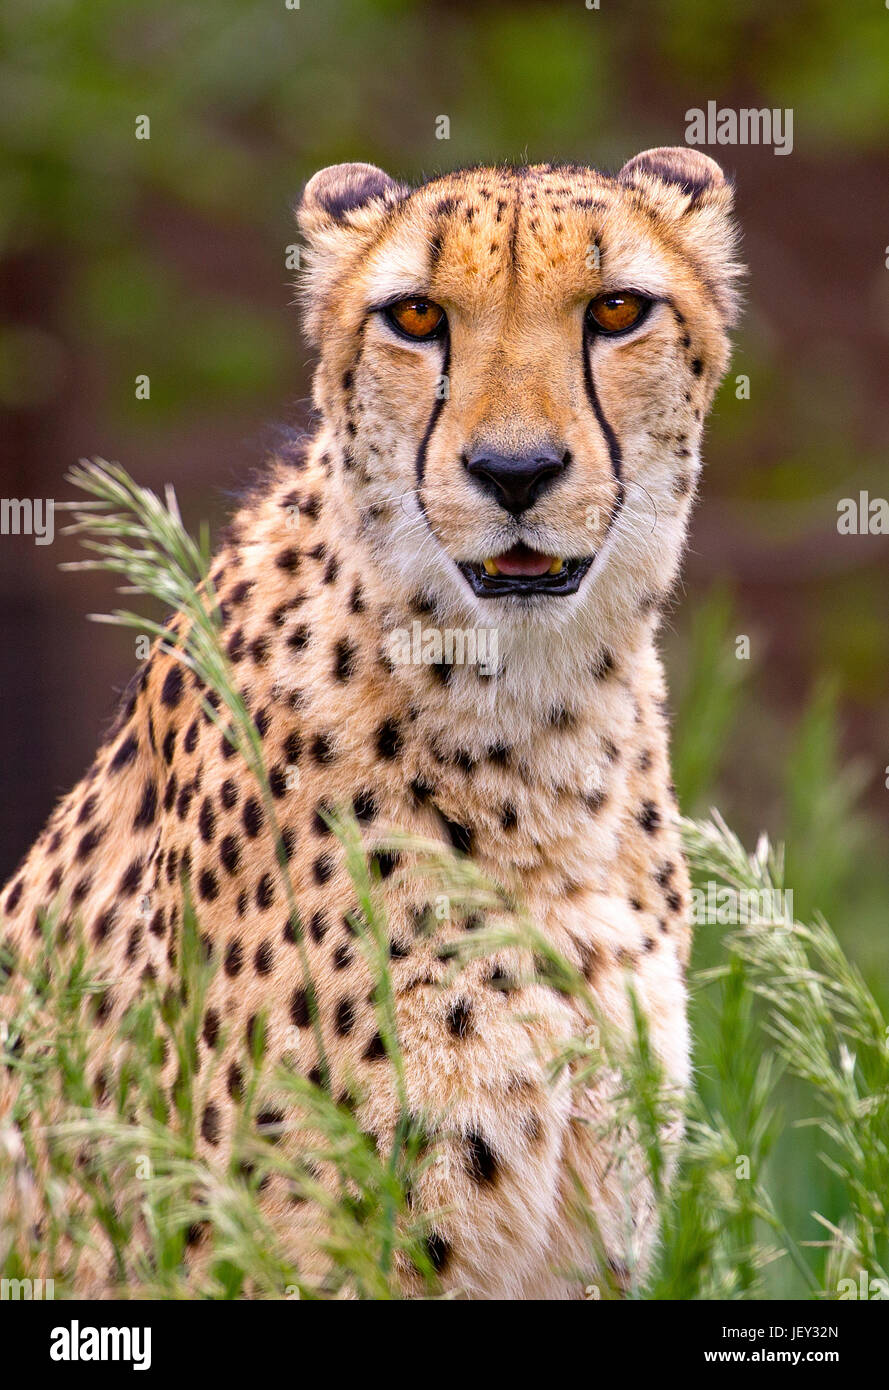 Portrait of cheetah in high grass - Stock Image